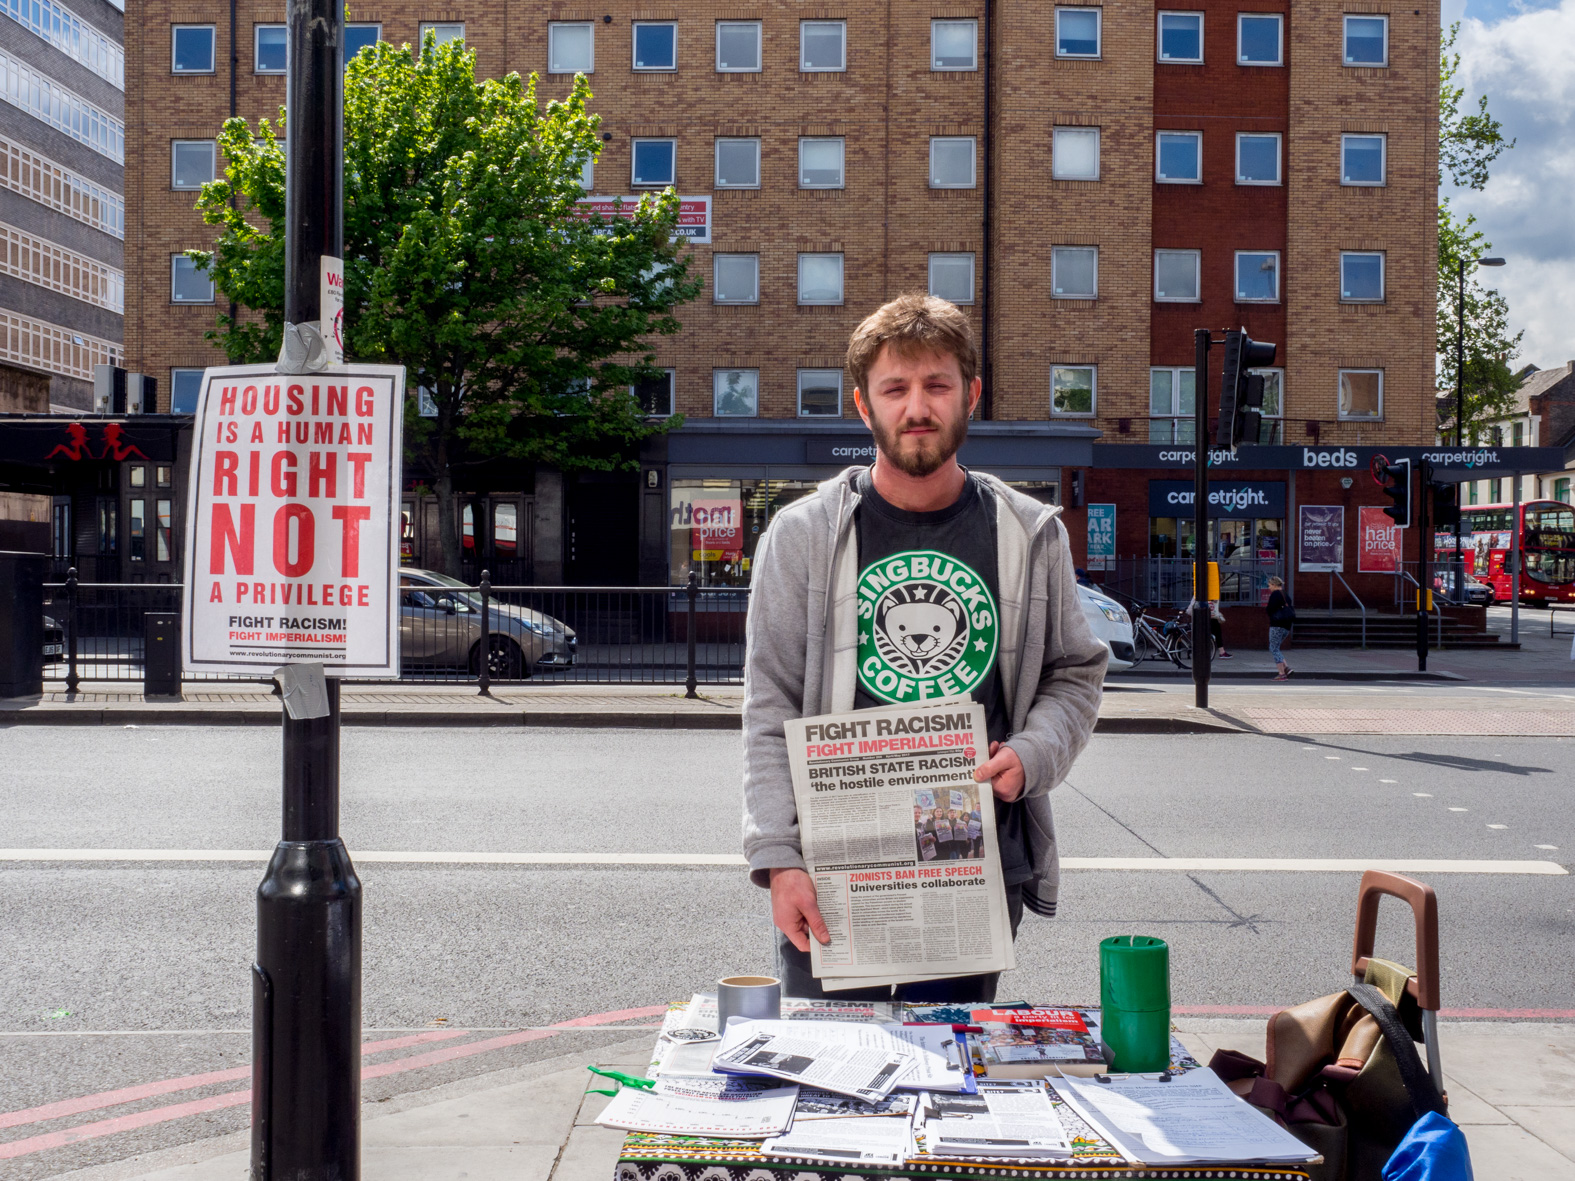 20 year old Matt, from London, studying Mathmatecs in Nottingham, with a copy of The Revolutionary Communist Group newspaper, Fight Racism! Fight Imperialism! Holloway, London.